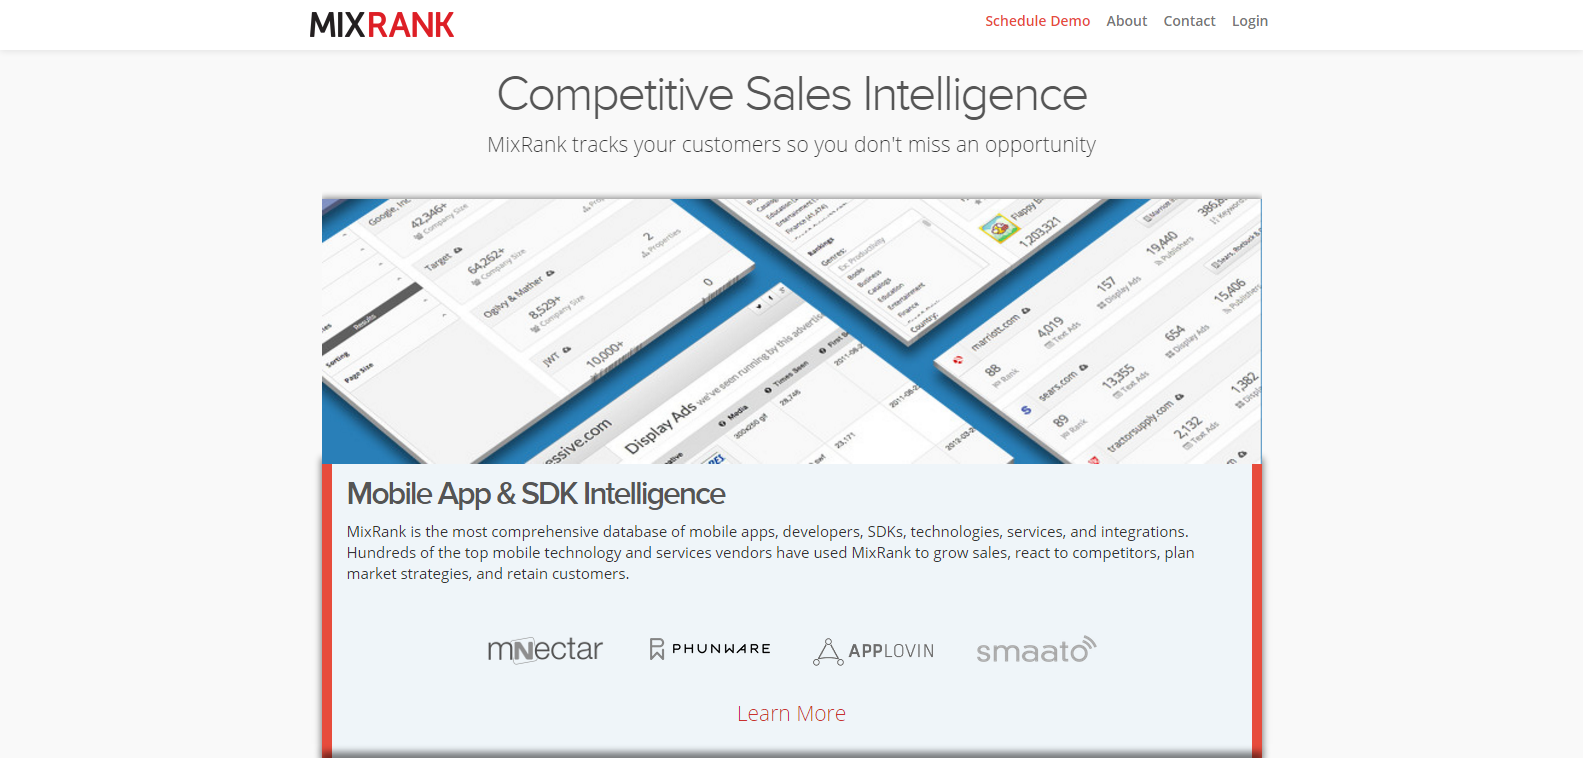 MixRank Competitive Sales Intelligence